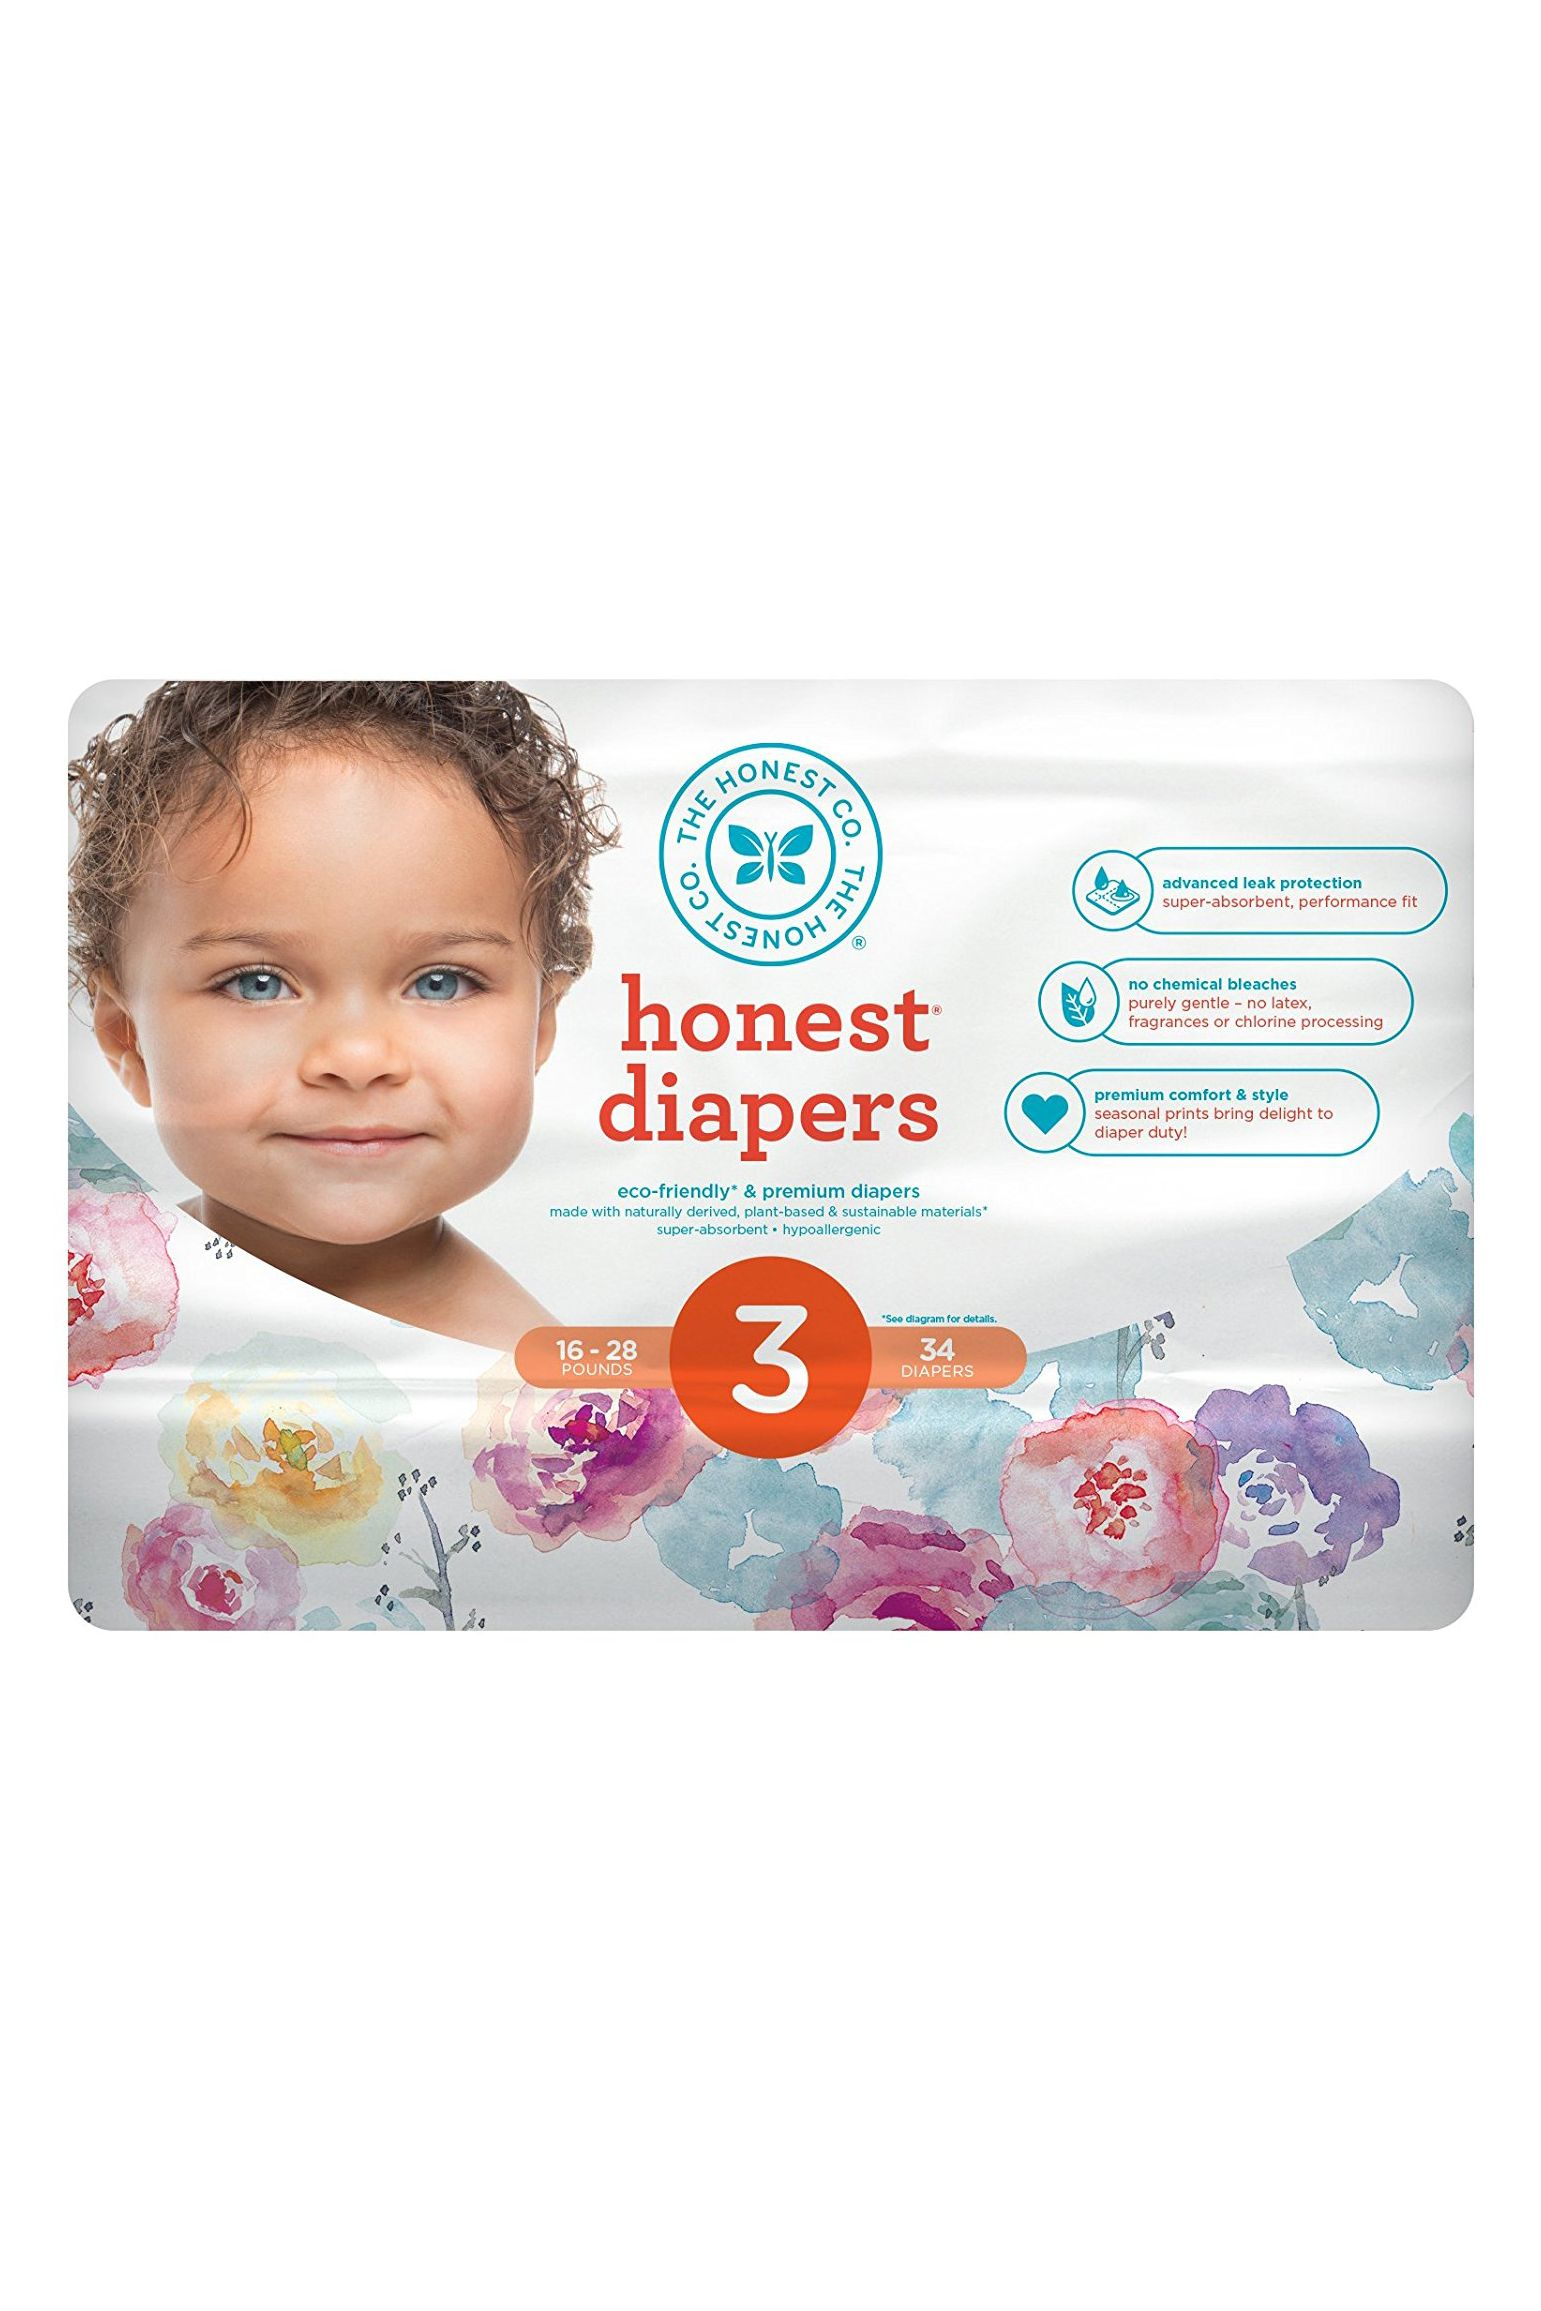 Baby Diapers - Terms of Use